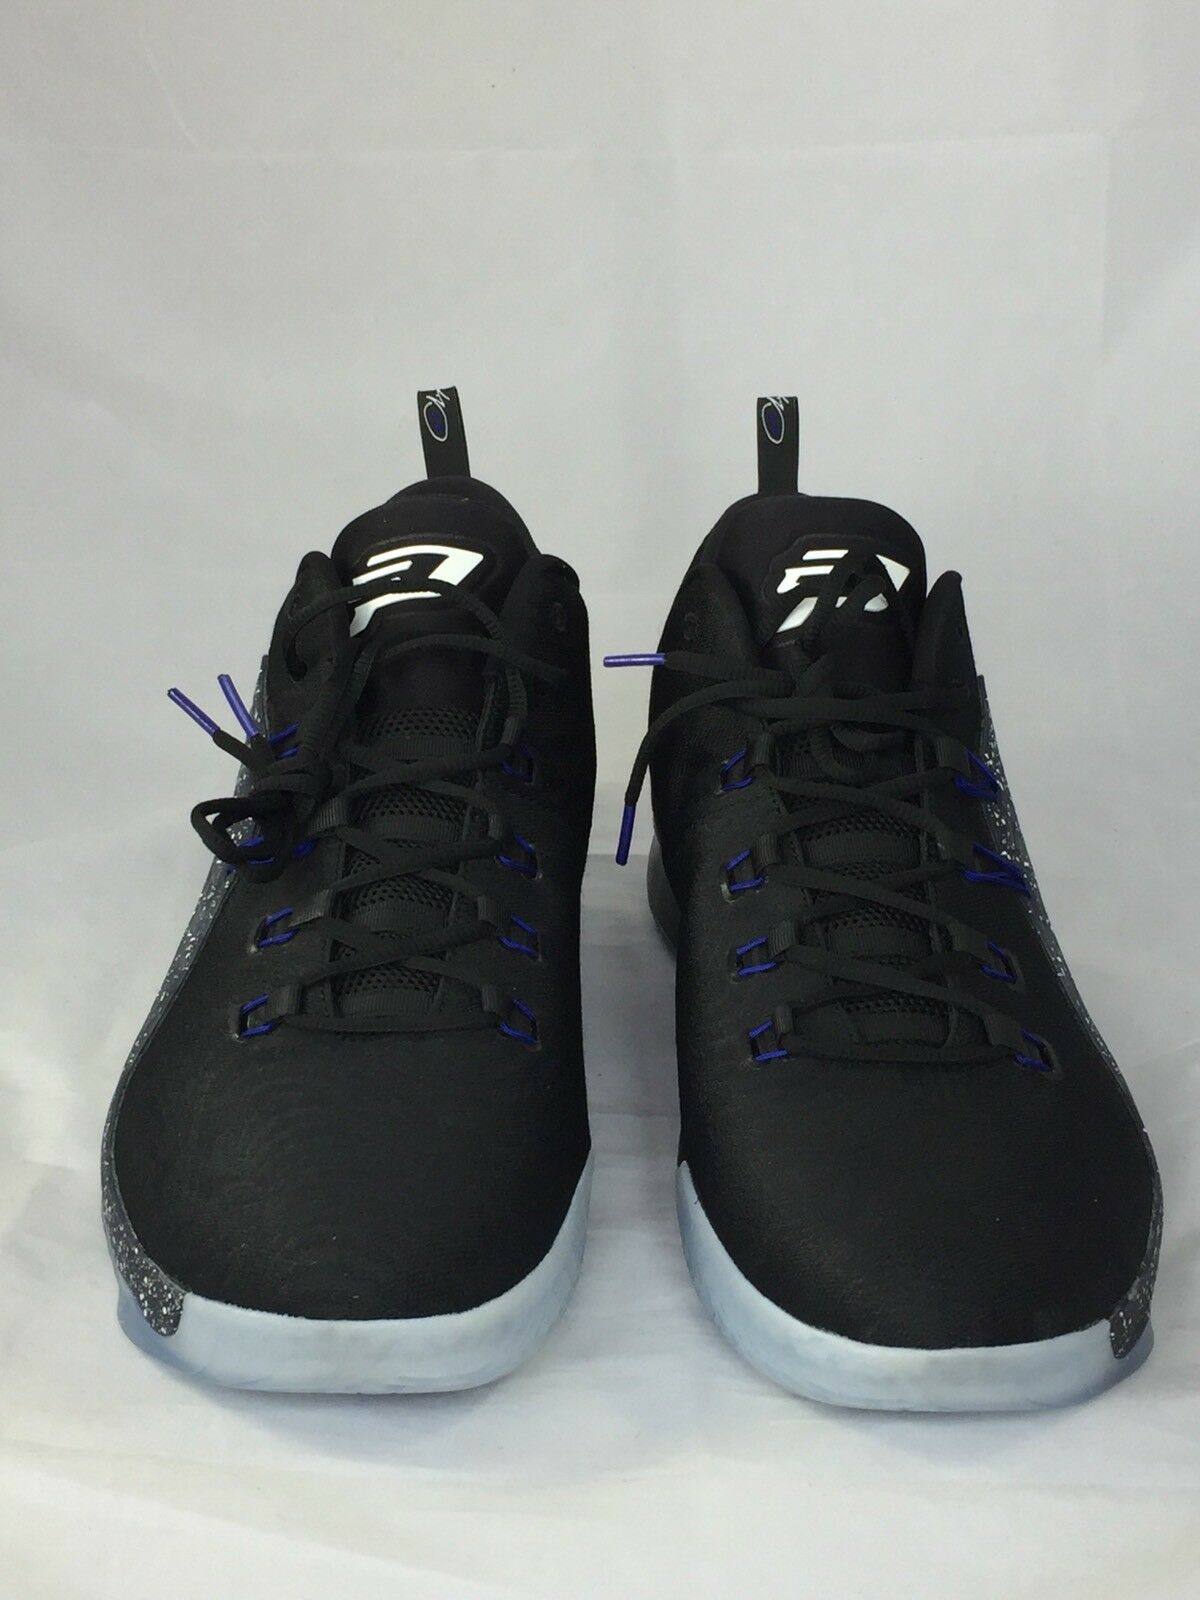 New Nike Jordan CP3.X Black White Concord SZ 18 18 18 Men Sneakers 950574